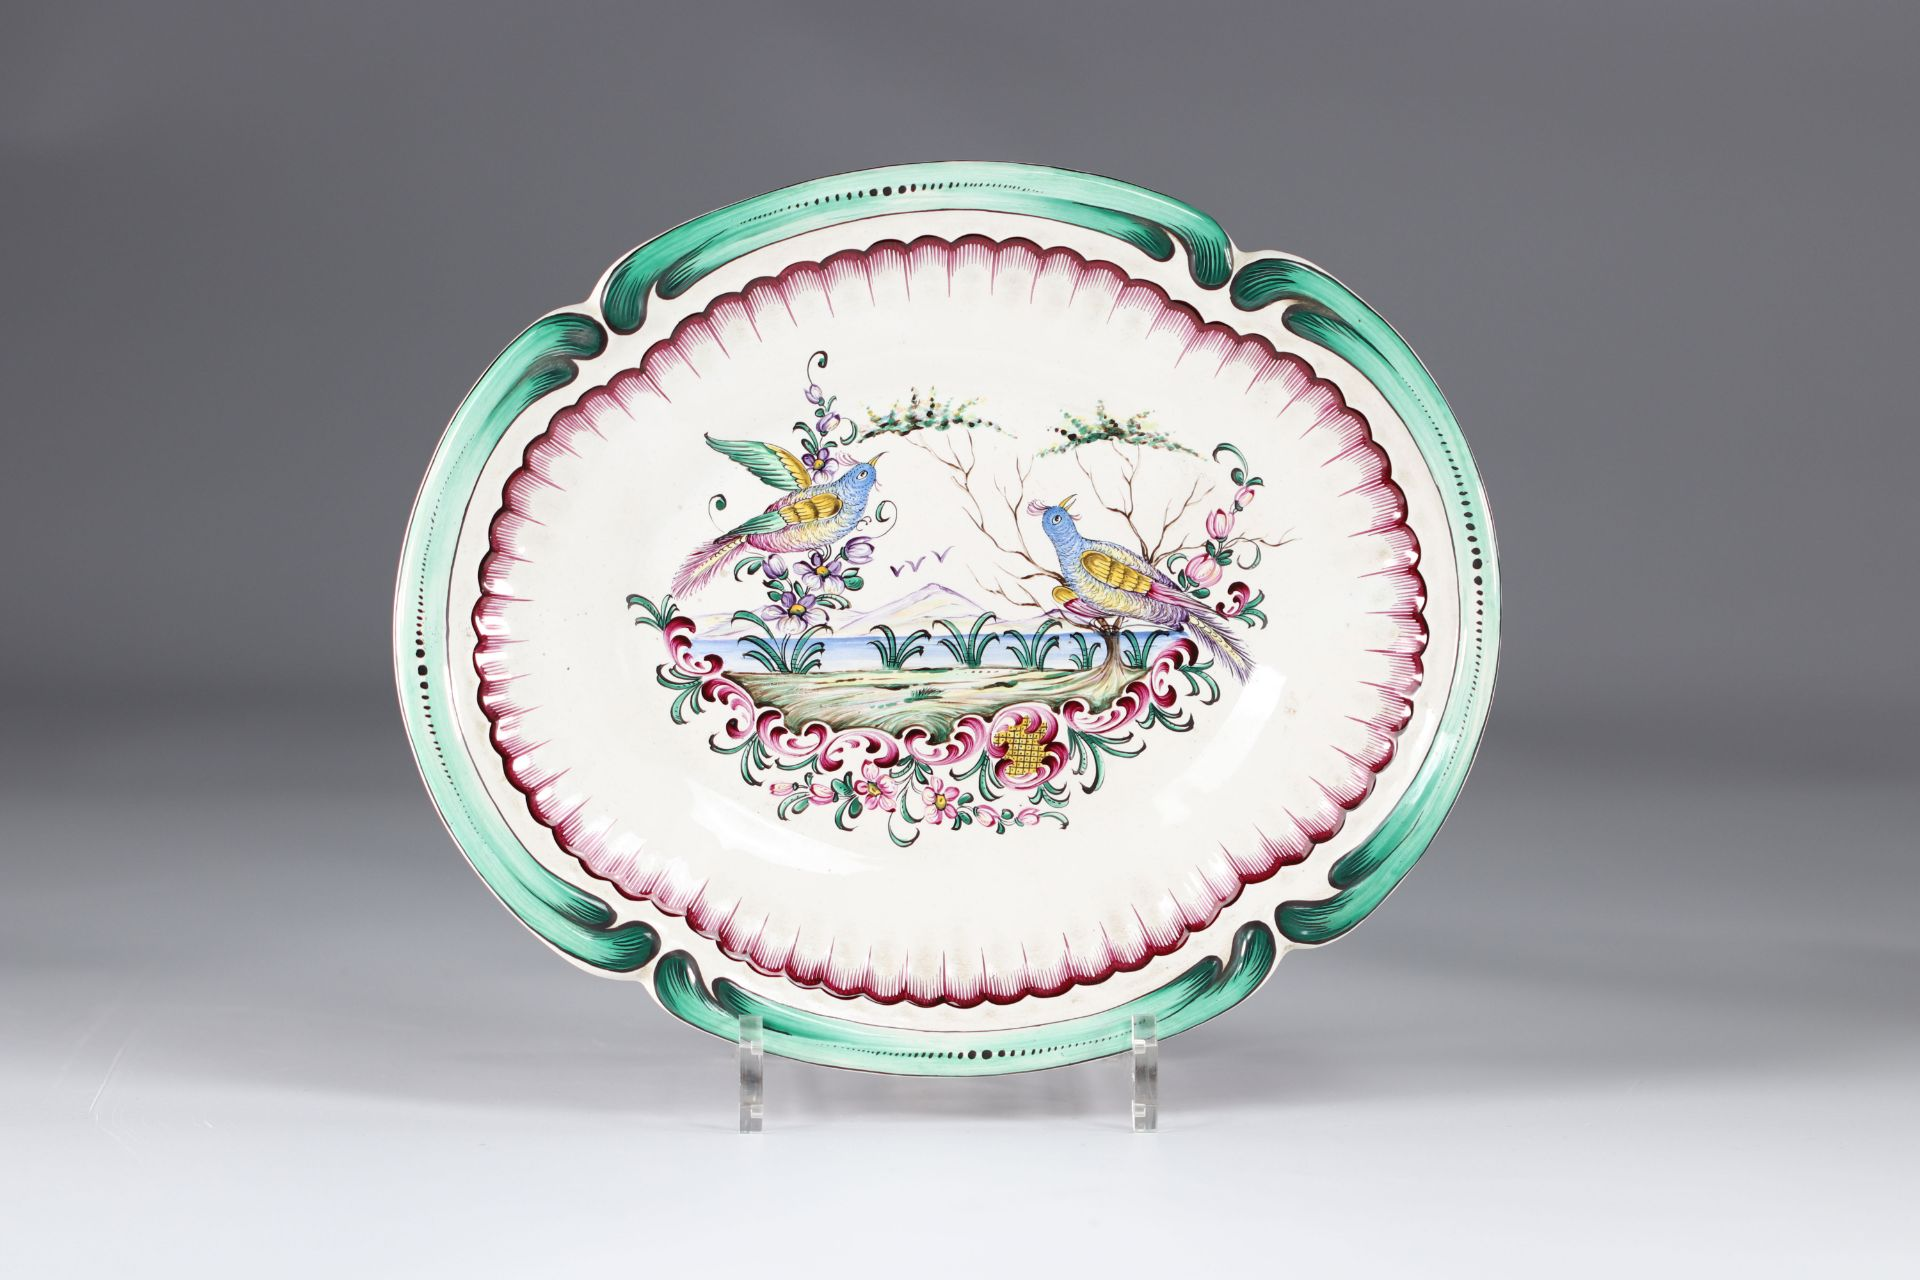 Aprey vegetable covered in earthenware with polychrome decoration, floral decoration and birds - Image 4 of 5